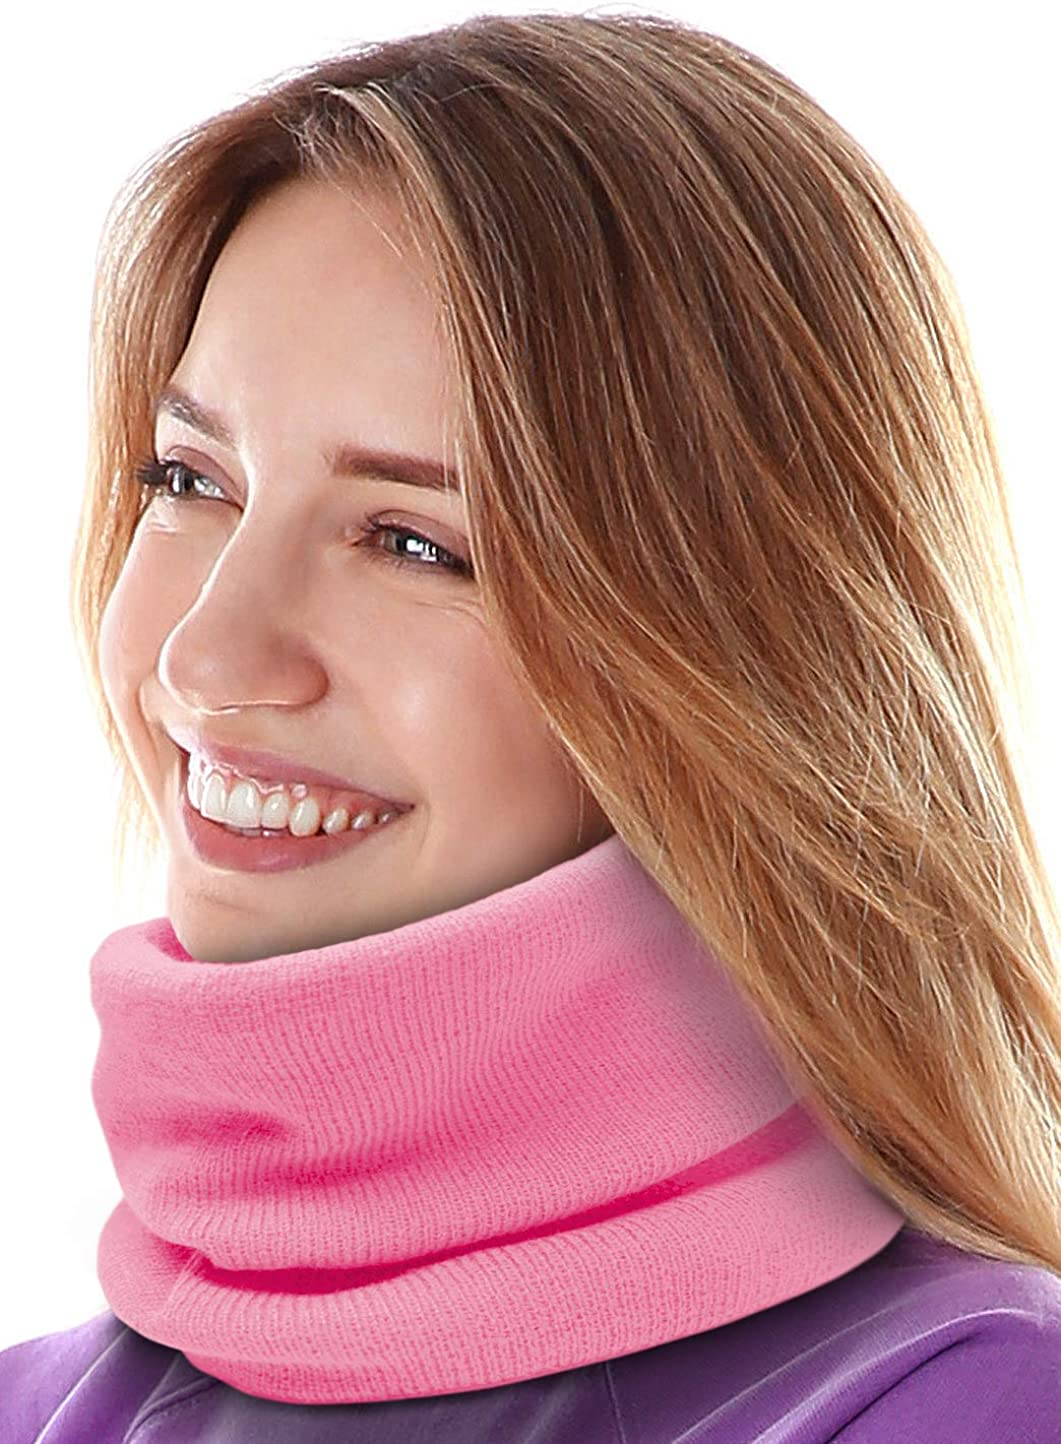 Neck Warmer - Winter Dual-Layered Fleece Neck Gaiter & Ski Tube Scarf - Cold Weather Face Cover & Mask for Men & Women